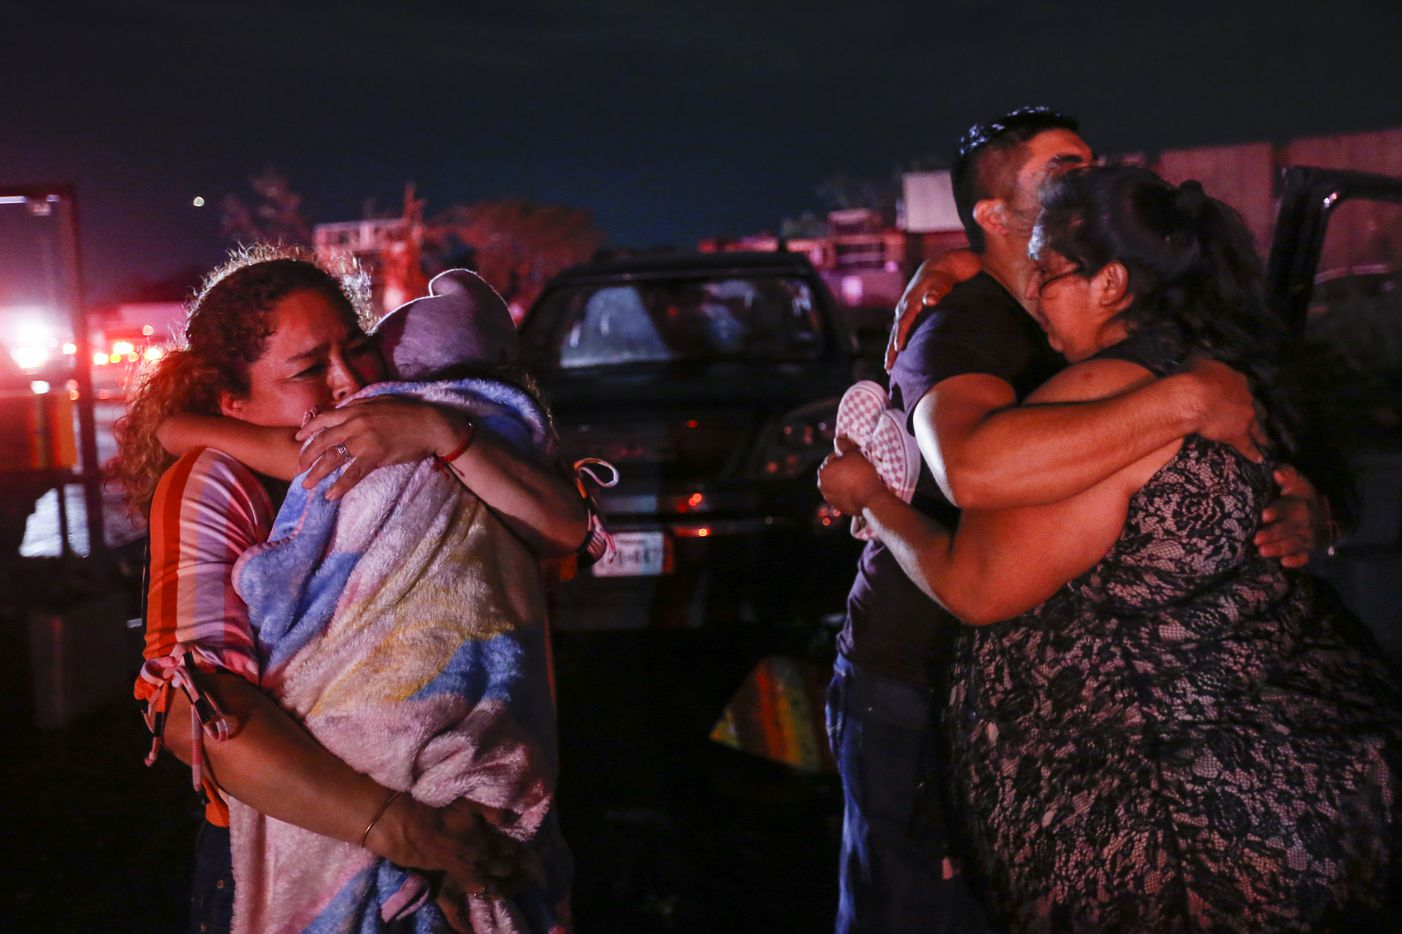 Family members embrace after reuniting after a storm near the intersection of Walnut Hill Lane and Marsh Lane in Dallas where a storm hit Sunday, Oct. 20, 2019.